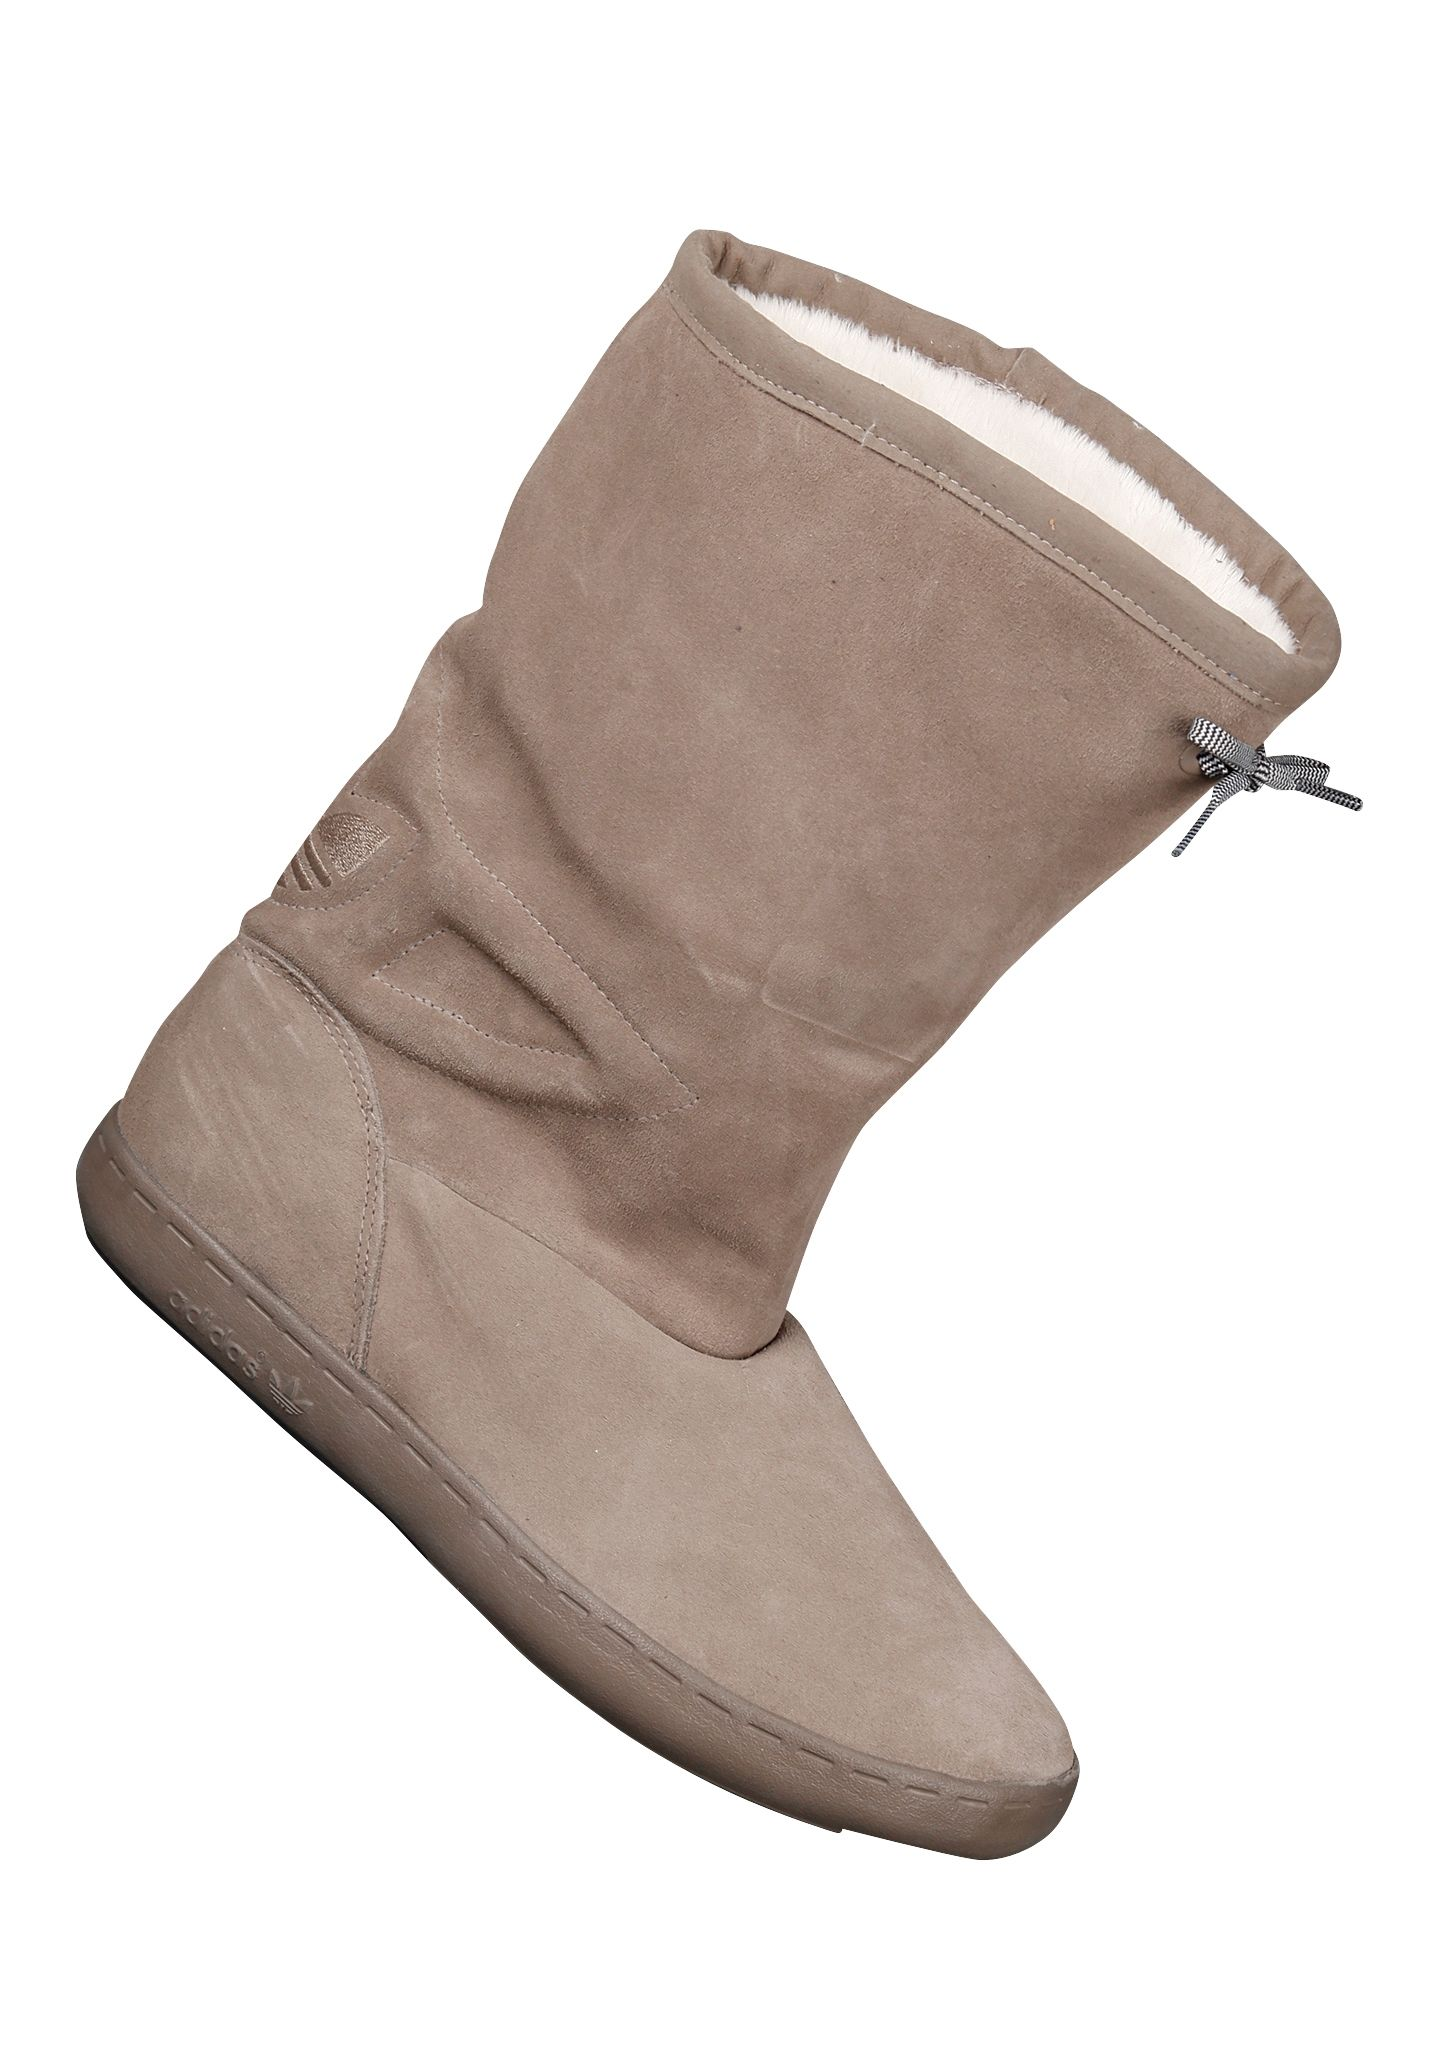 ddfb8643a3 adidas Originals Attitude Winter Hi - Stiefel für Damen - Beige - Planet  Sports